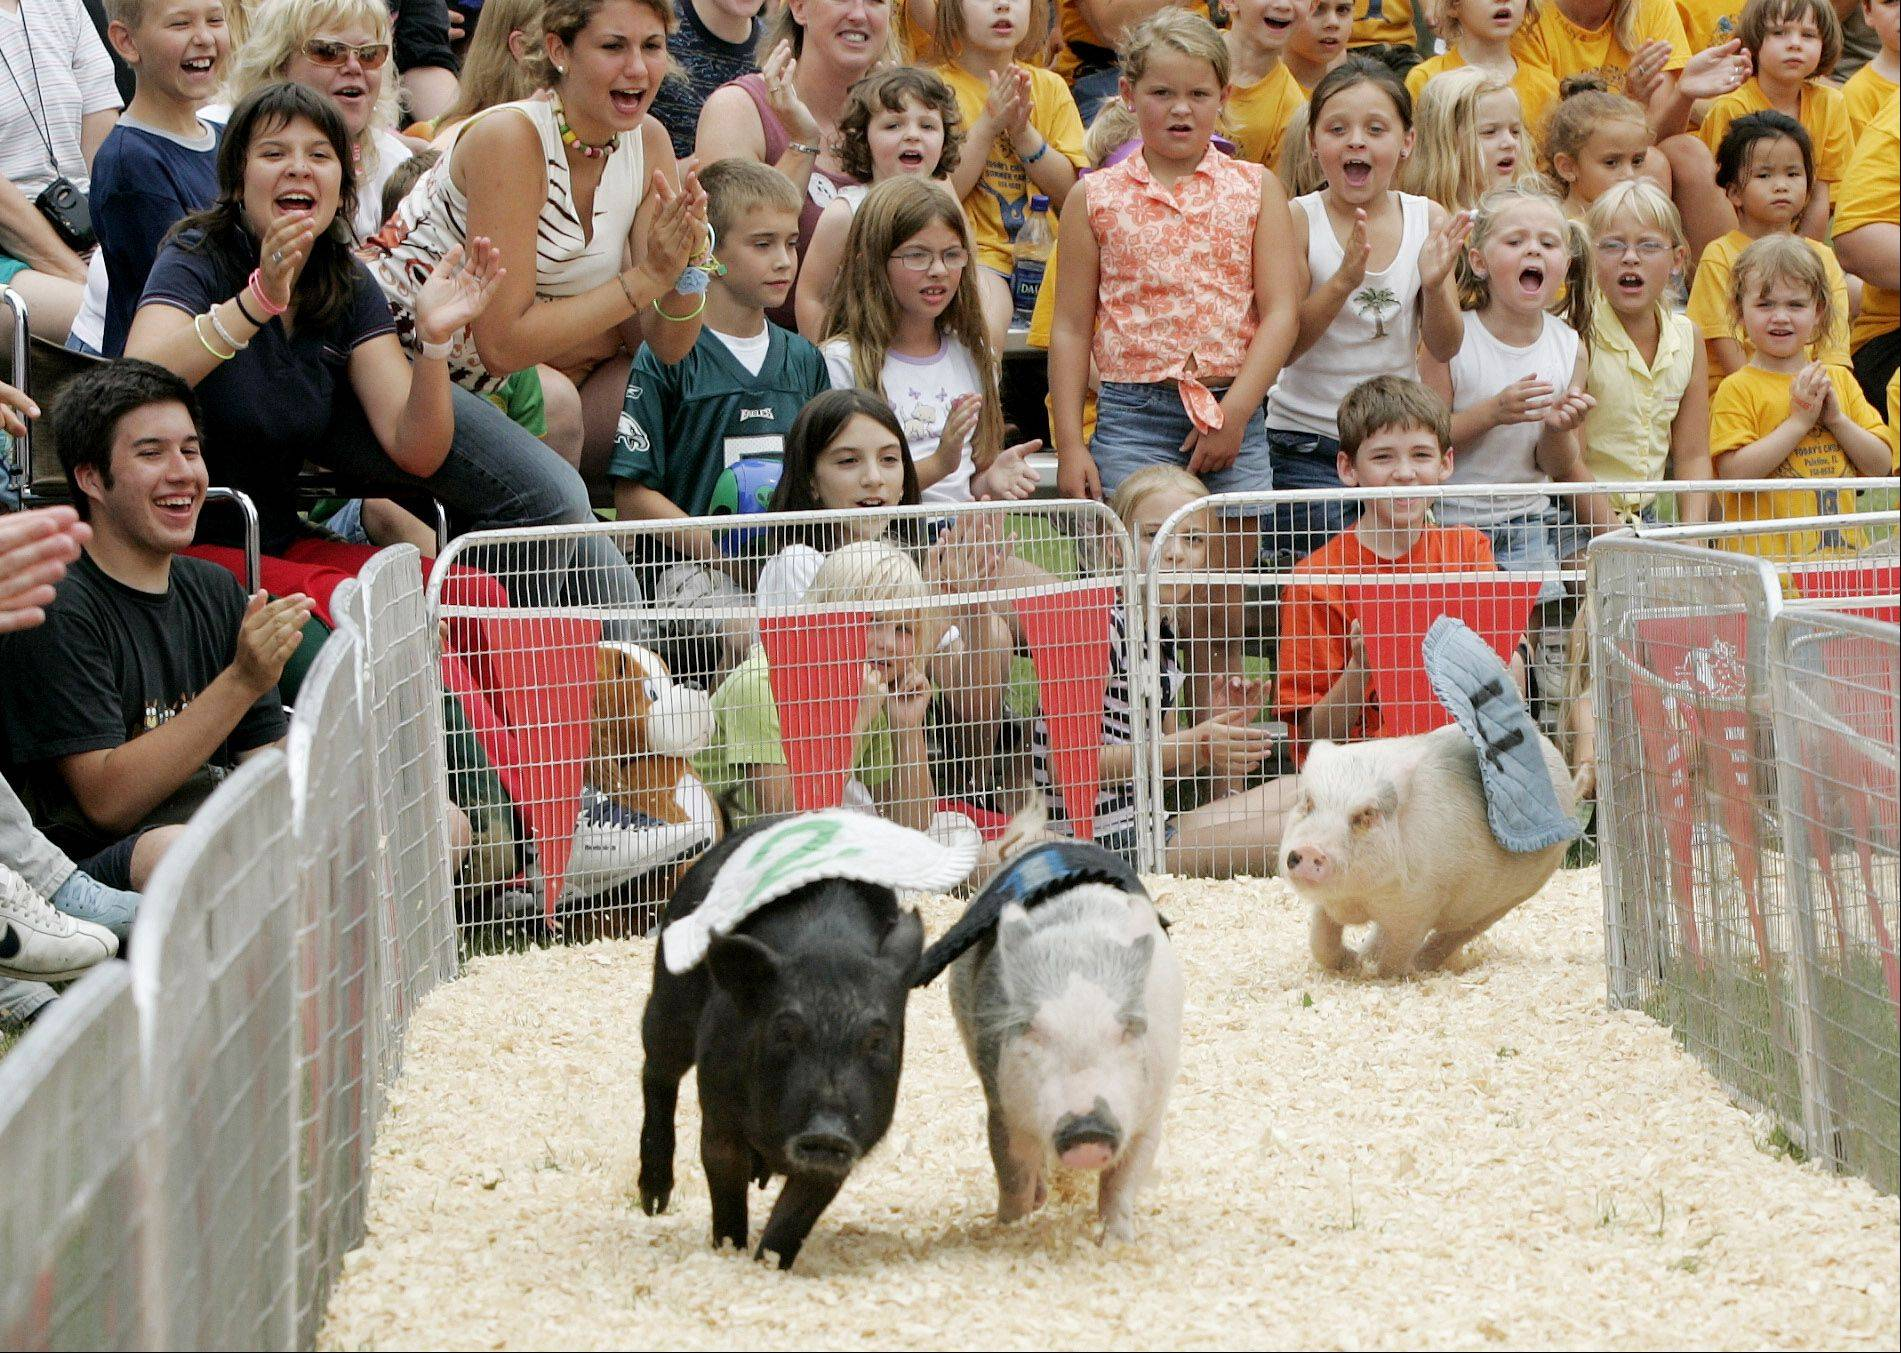 2004: Robinson's Racing Pigs do one of the things they do best -- race.